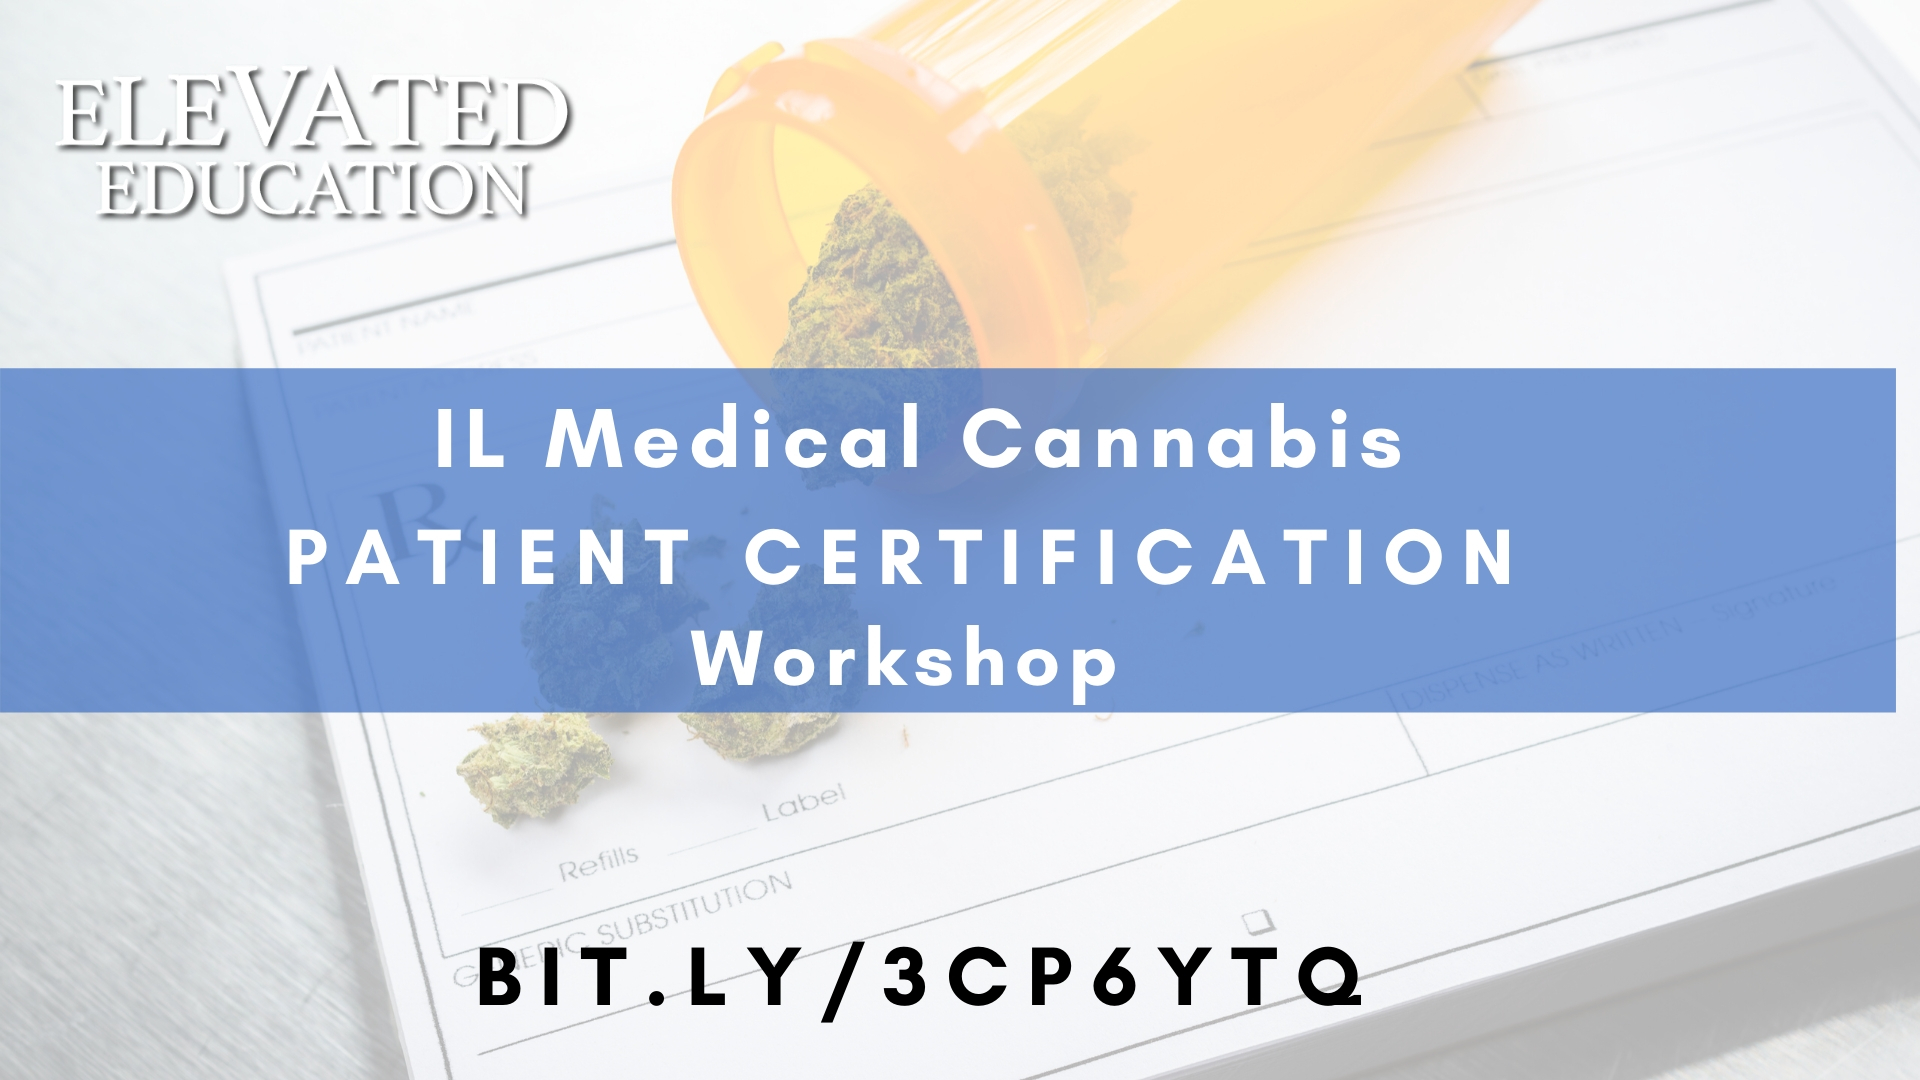 Medical Cannabis Patient Certification (Elevated Education)